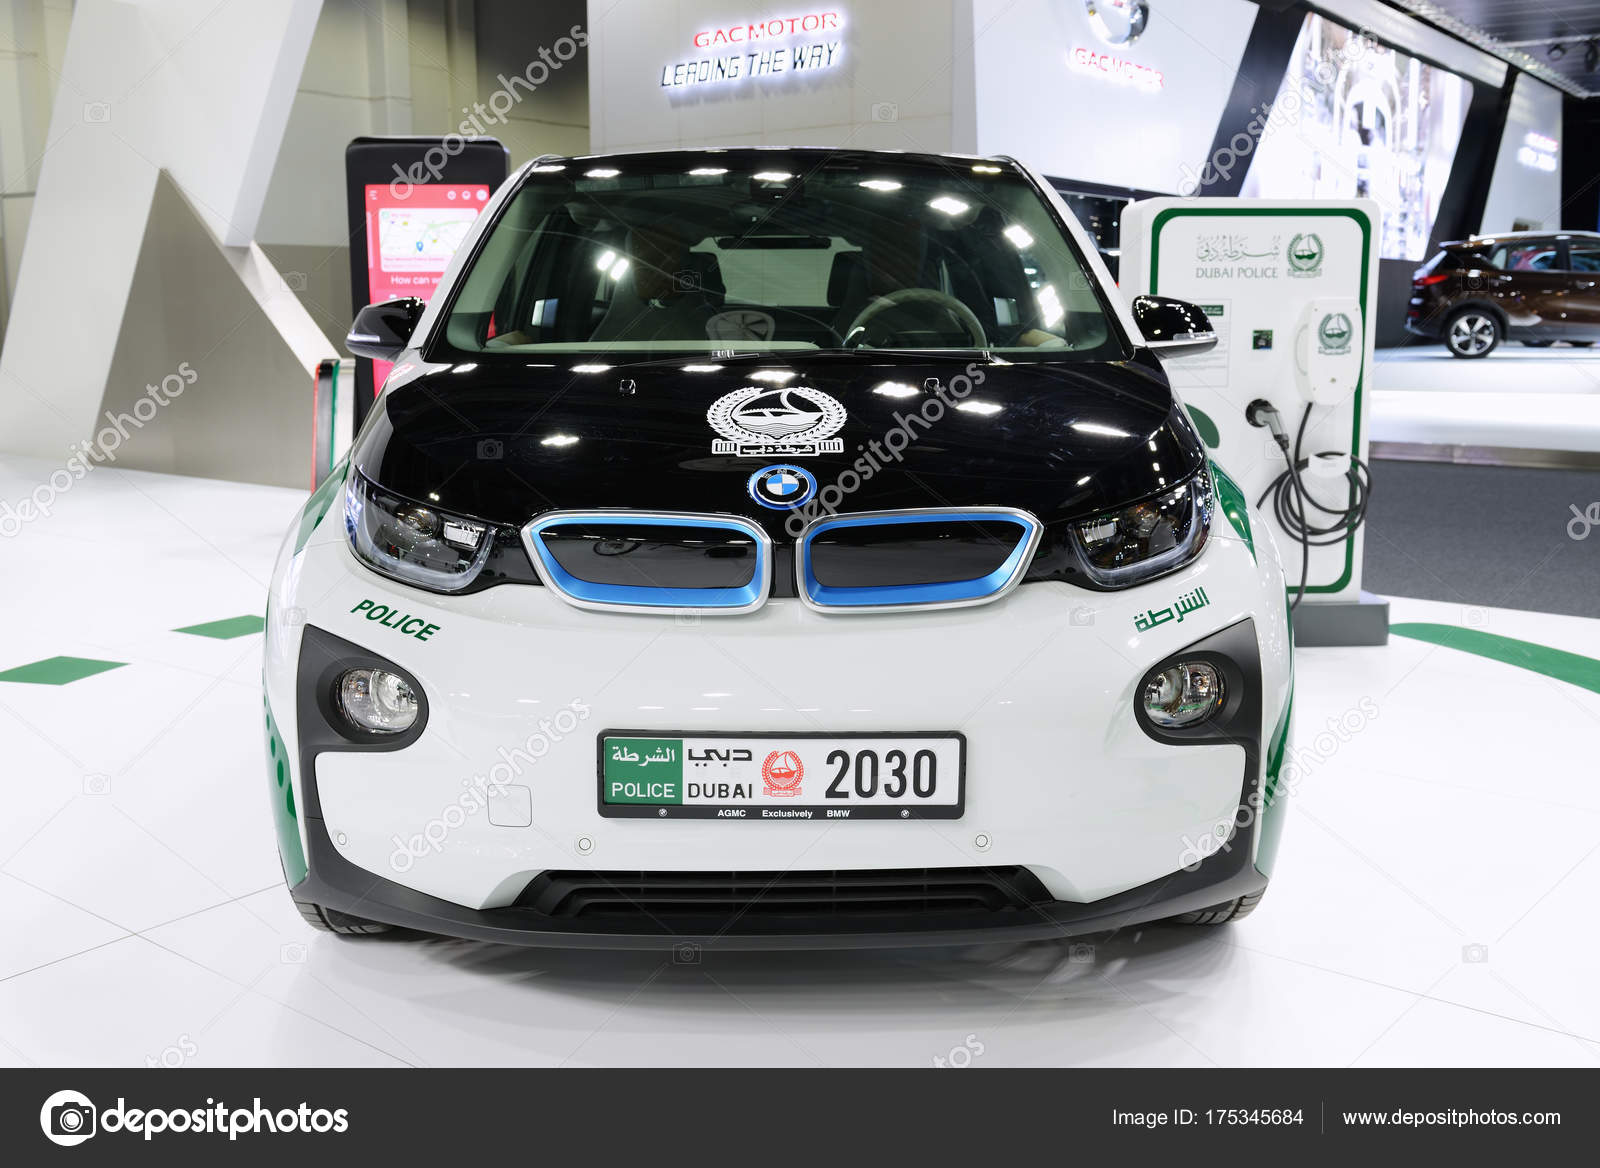 Dubai Uae November 18 The Bmw I3 Of Dubai Police Electric Car Is